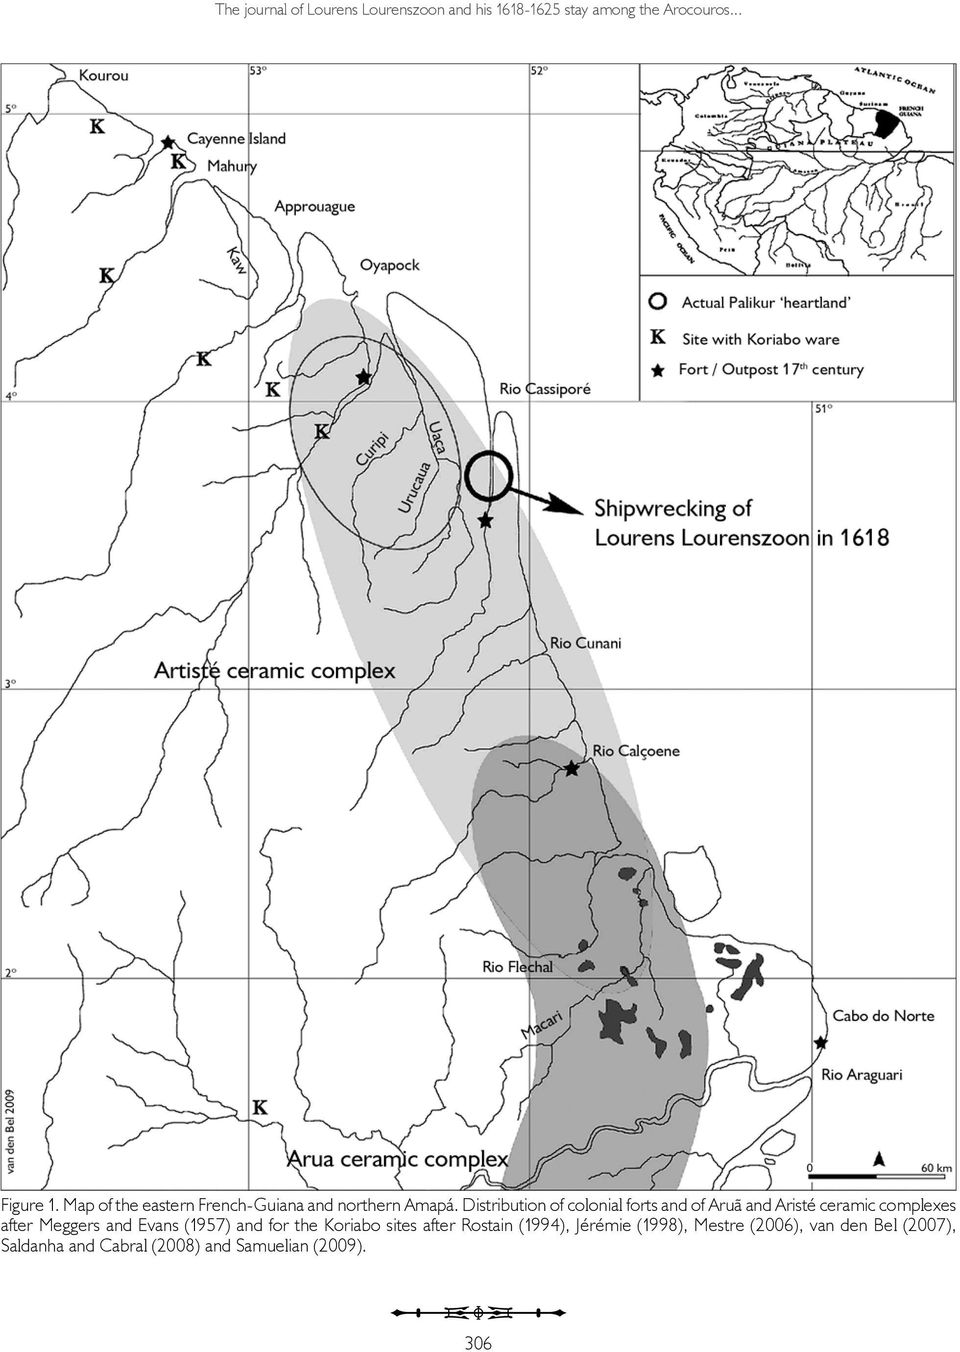 Distribution of colonial forts and of Aruã and Aristé ceramic complexes after Meggers and Evans